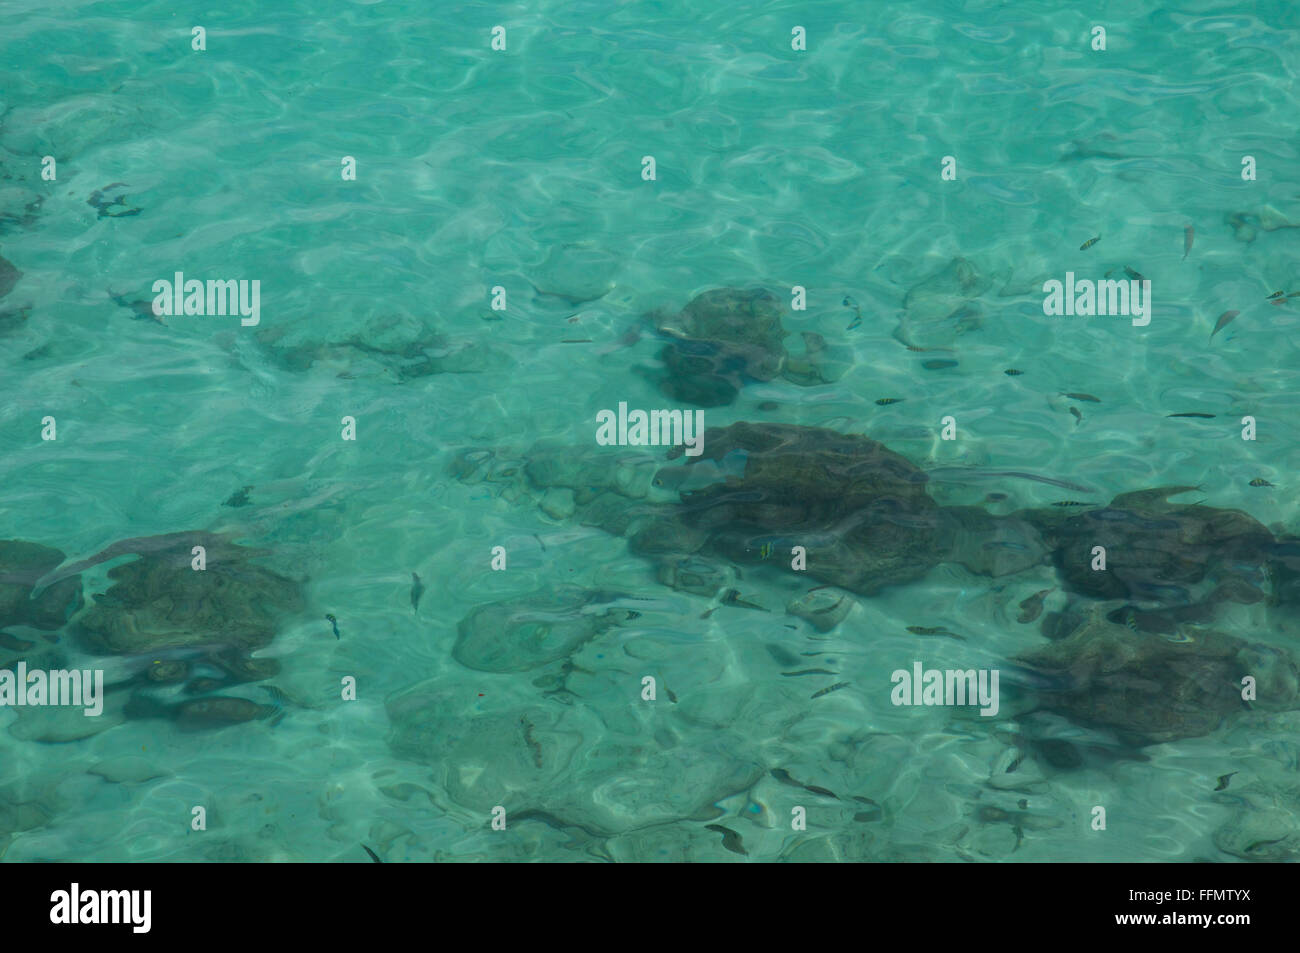 looking down on to clean clear seas showing fish and corals. - Stock Image